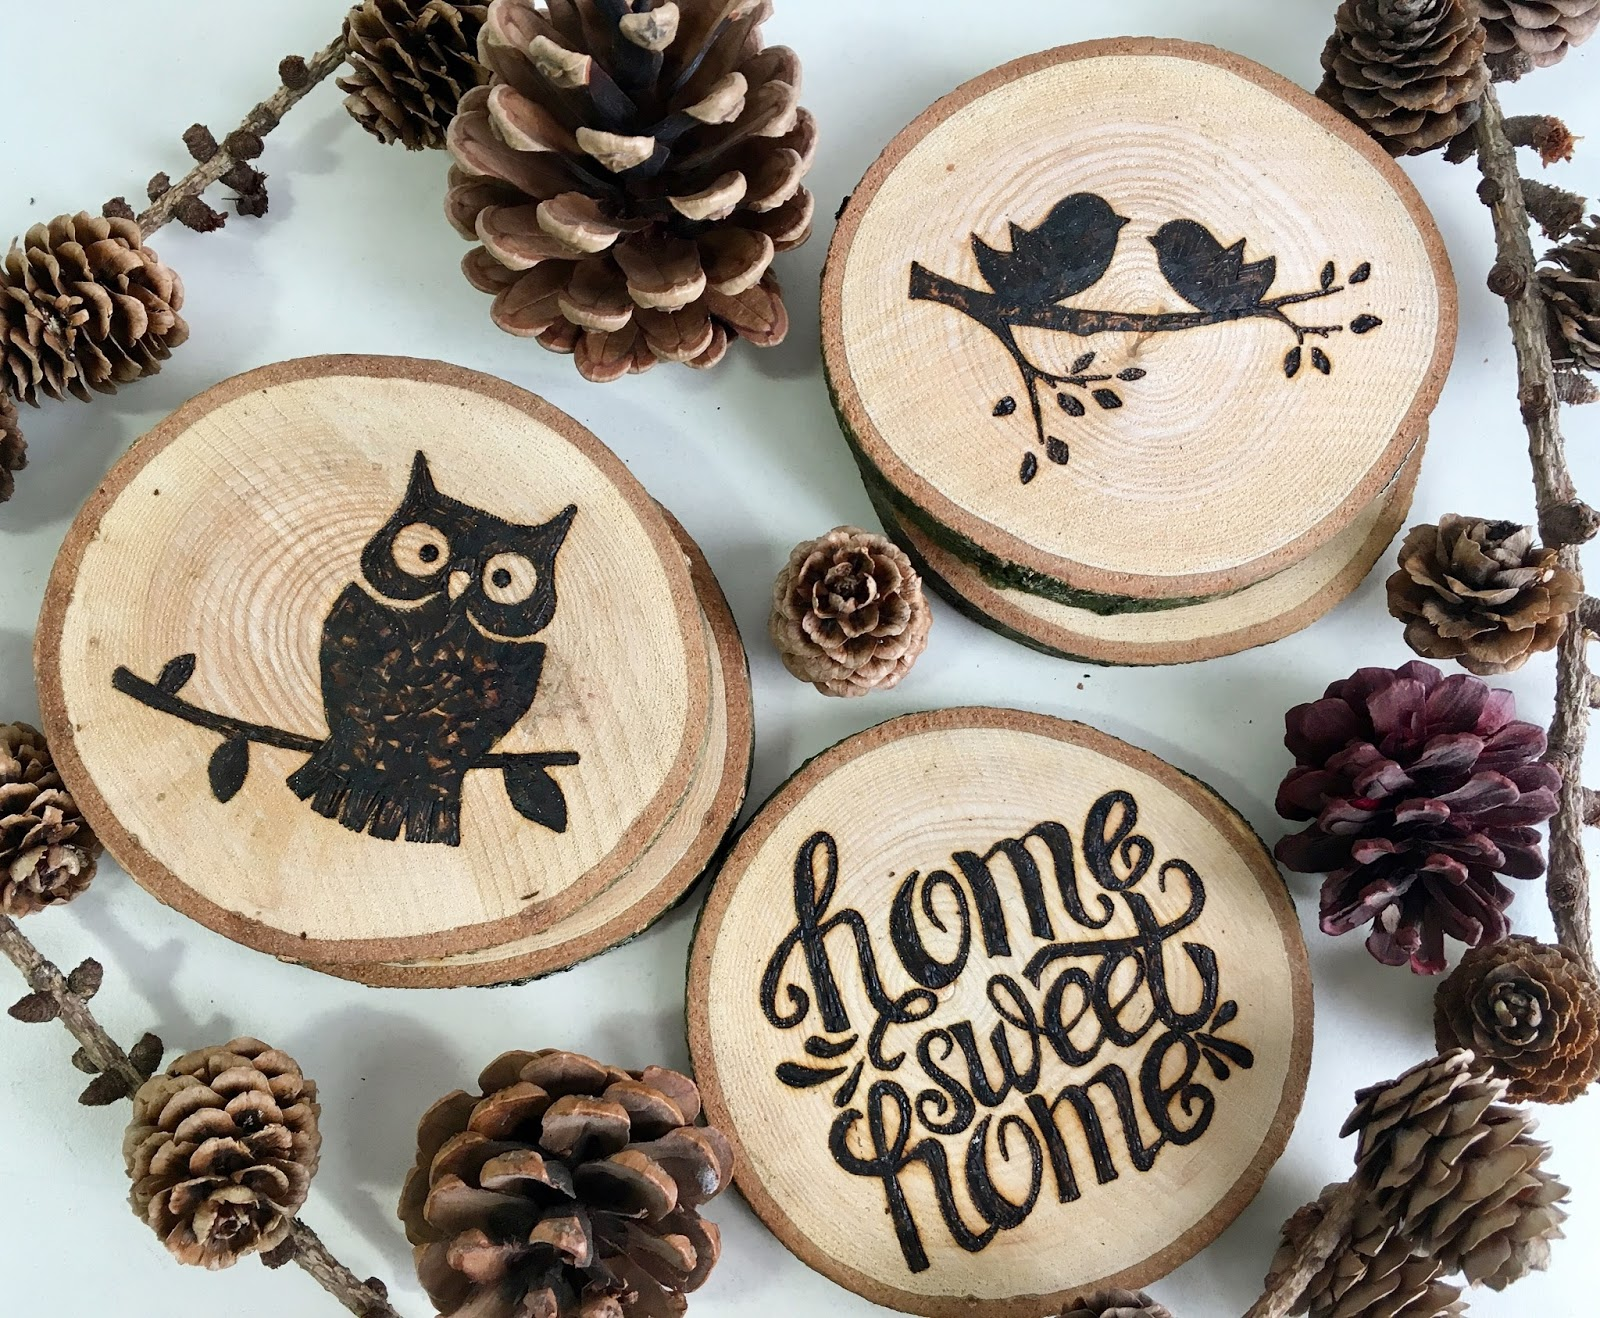 Melanie Rose Makes Diy Wood Burned Coasters